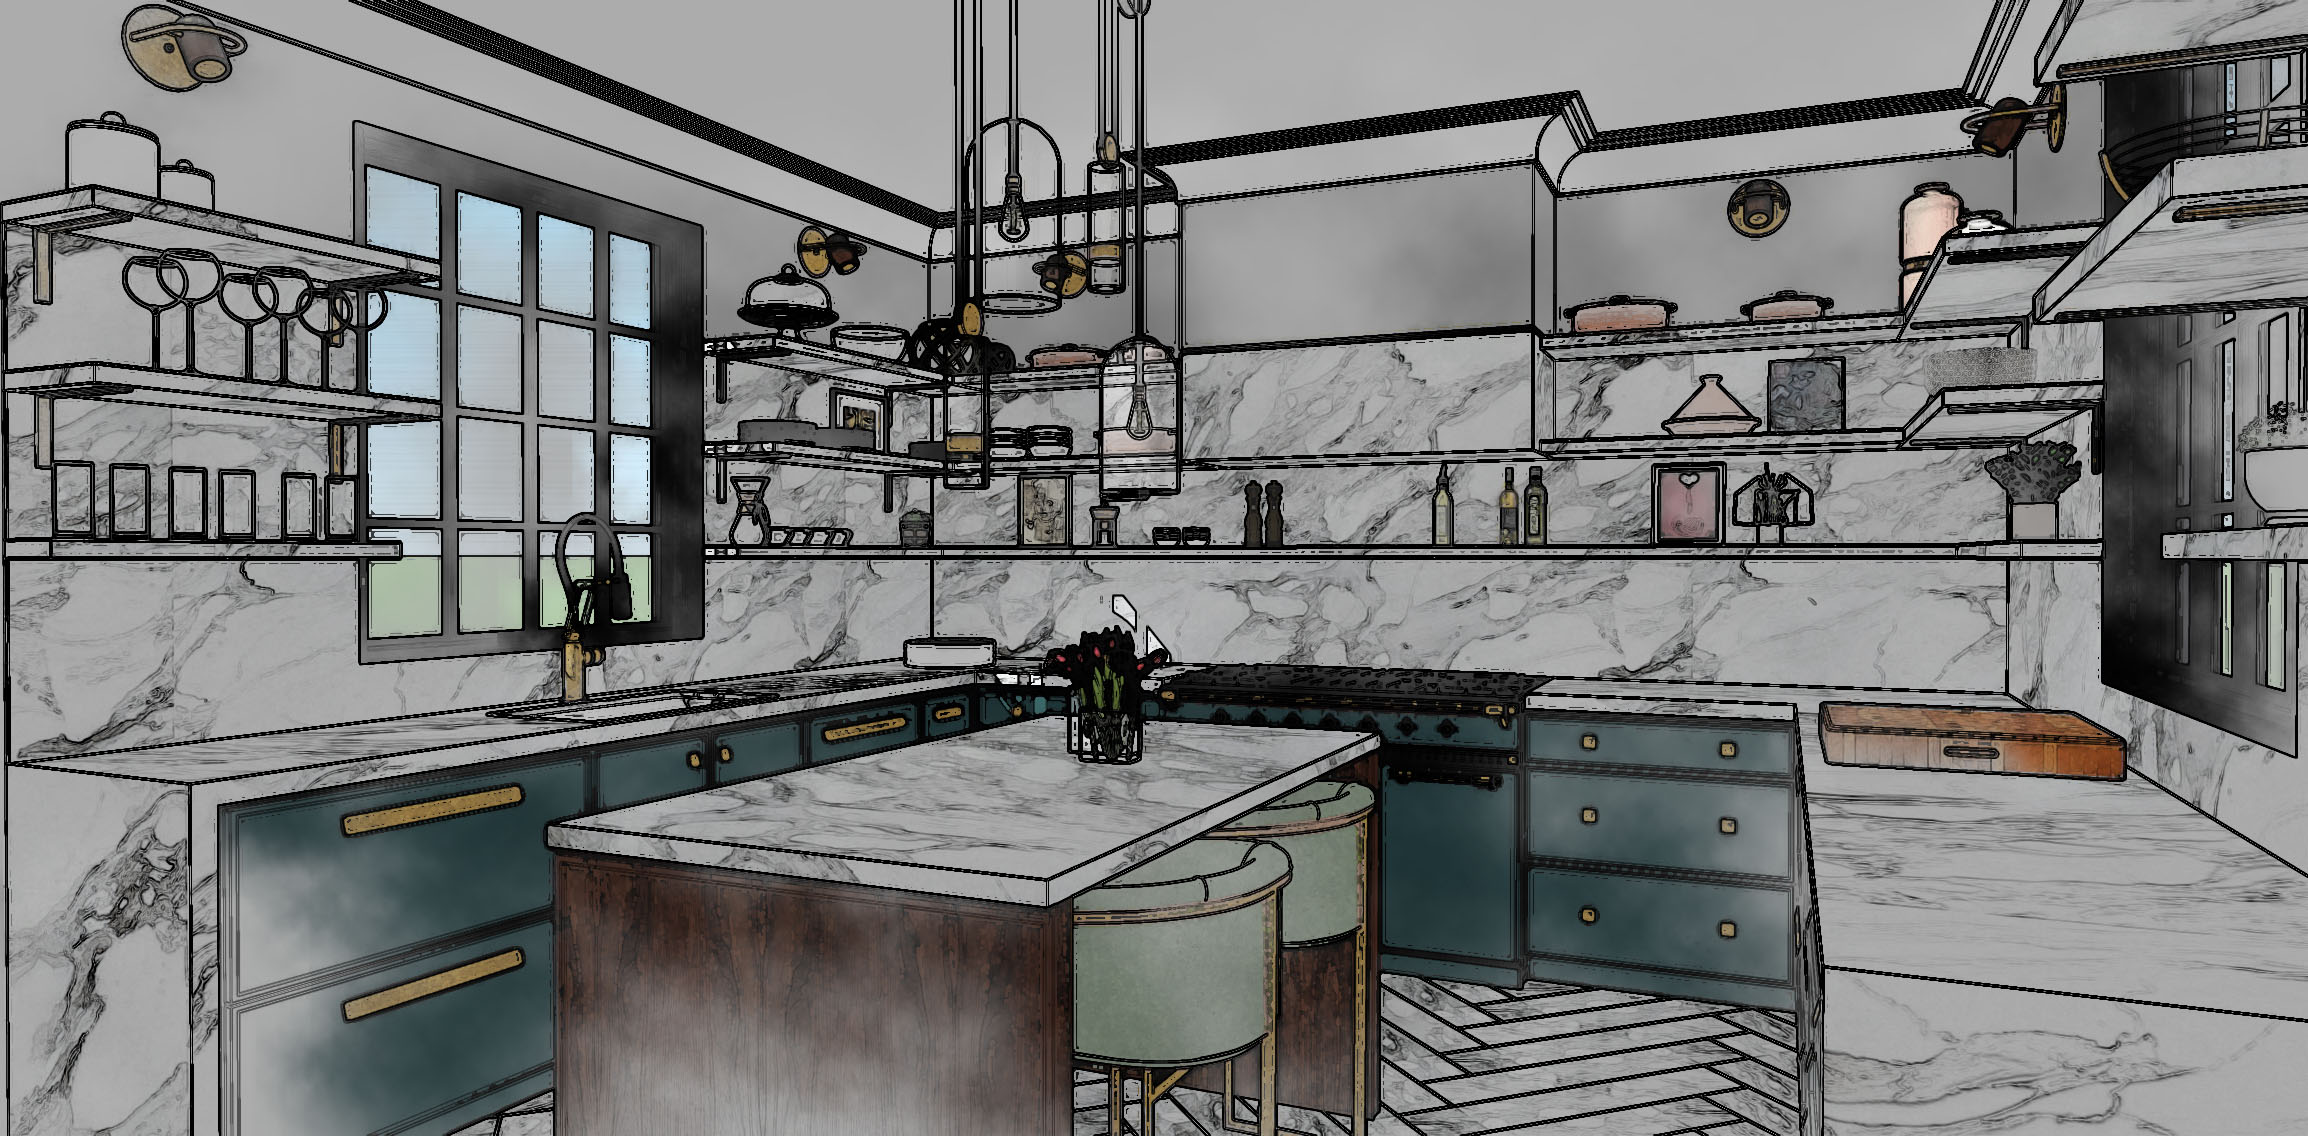 water color kitchen.jpg